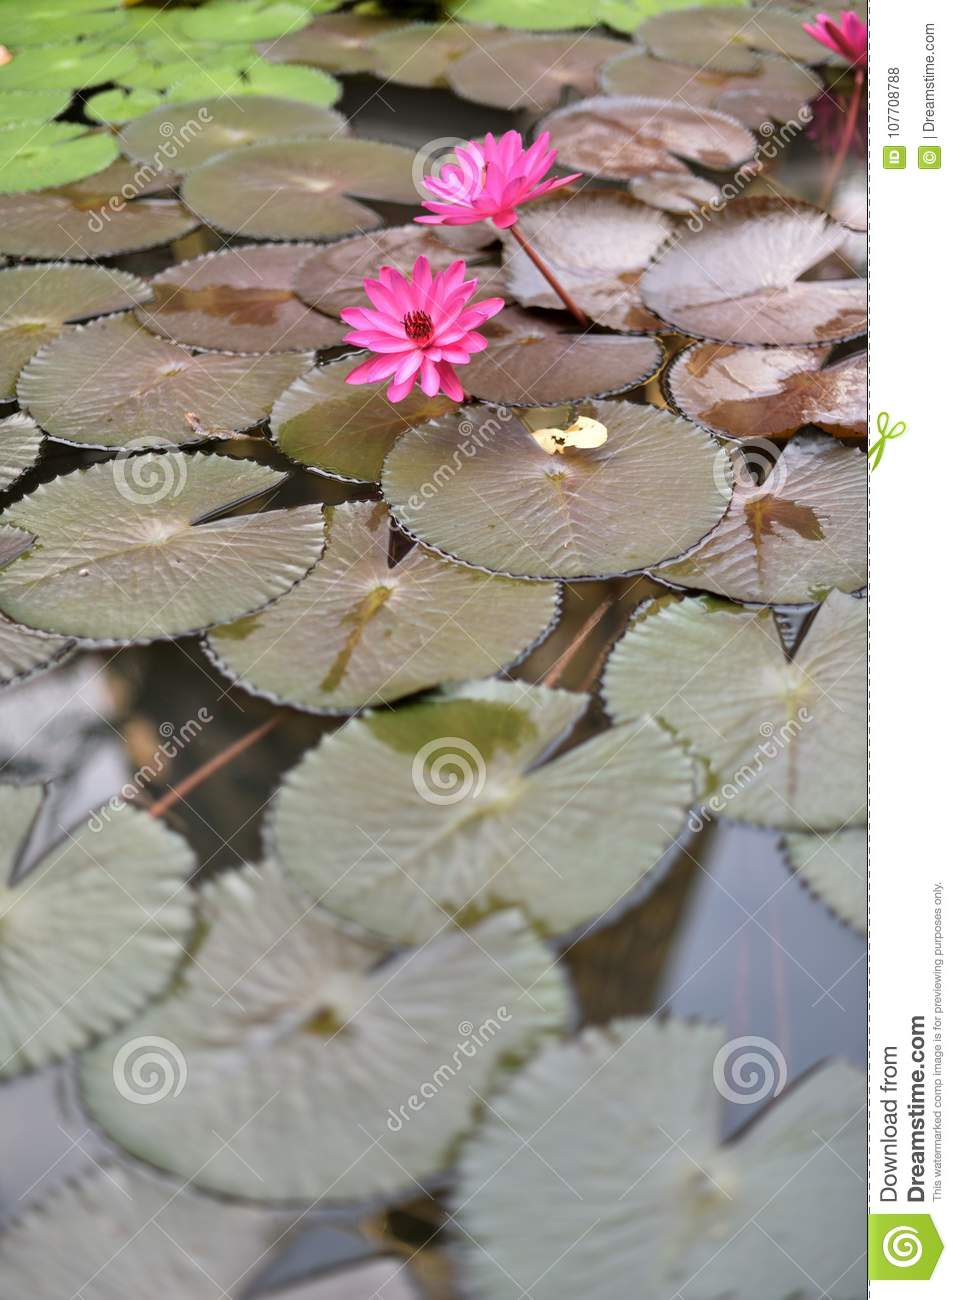 Blooming Lotus Flowers Floating On The Pond Stock Photo Image Of